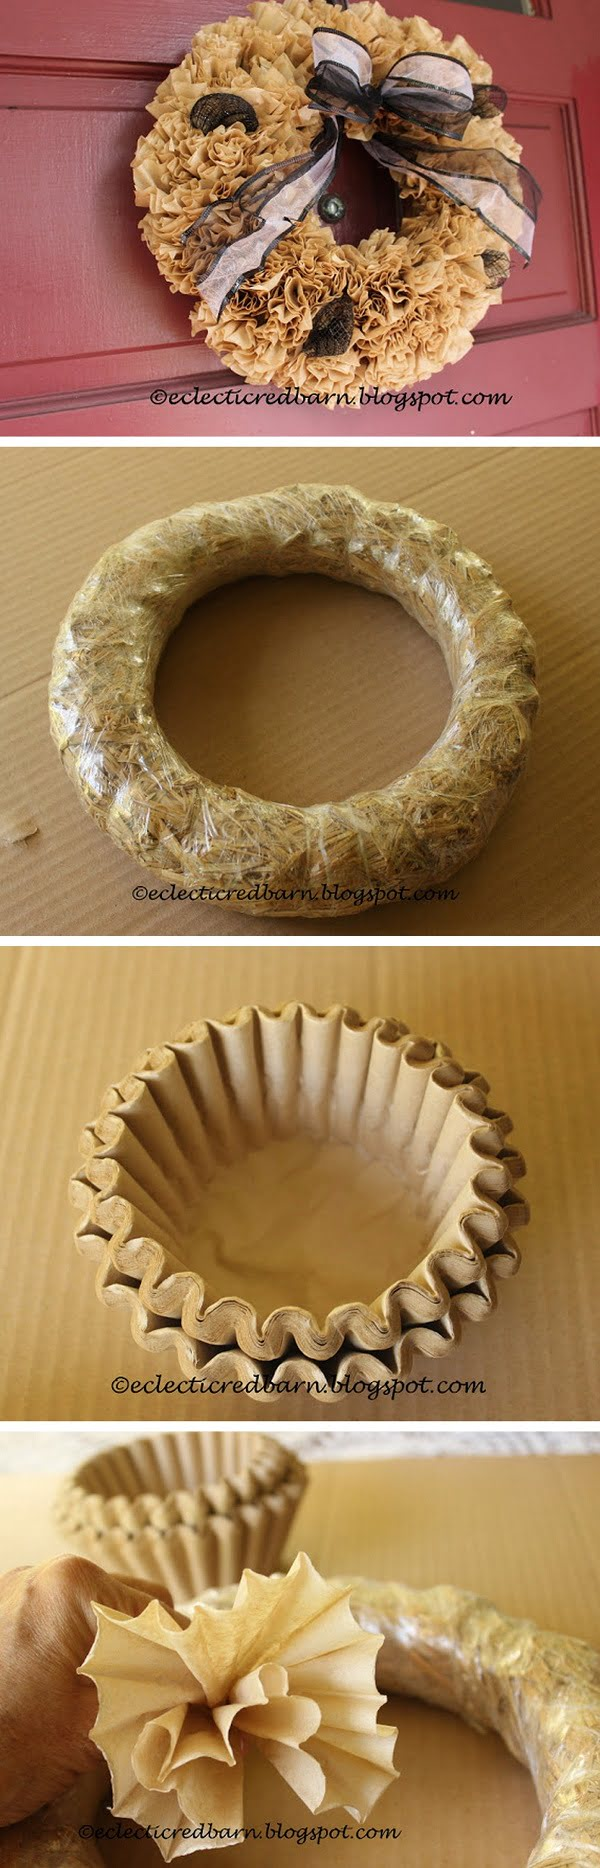 Check out the tutorial on how to make a DIY fall wreath from coffee filters